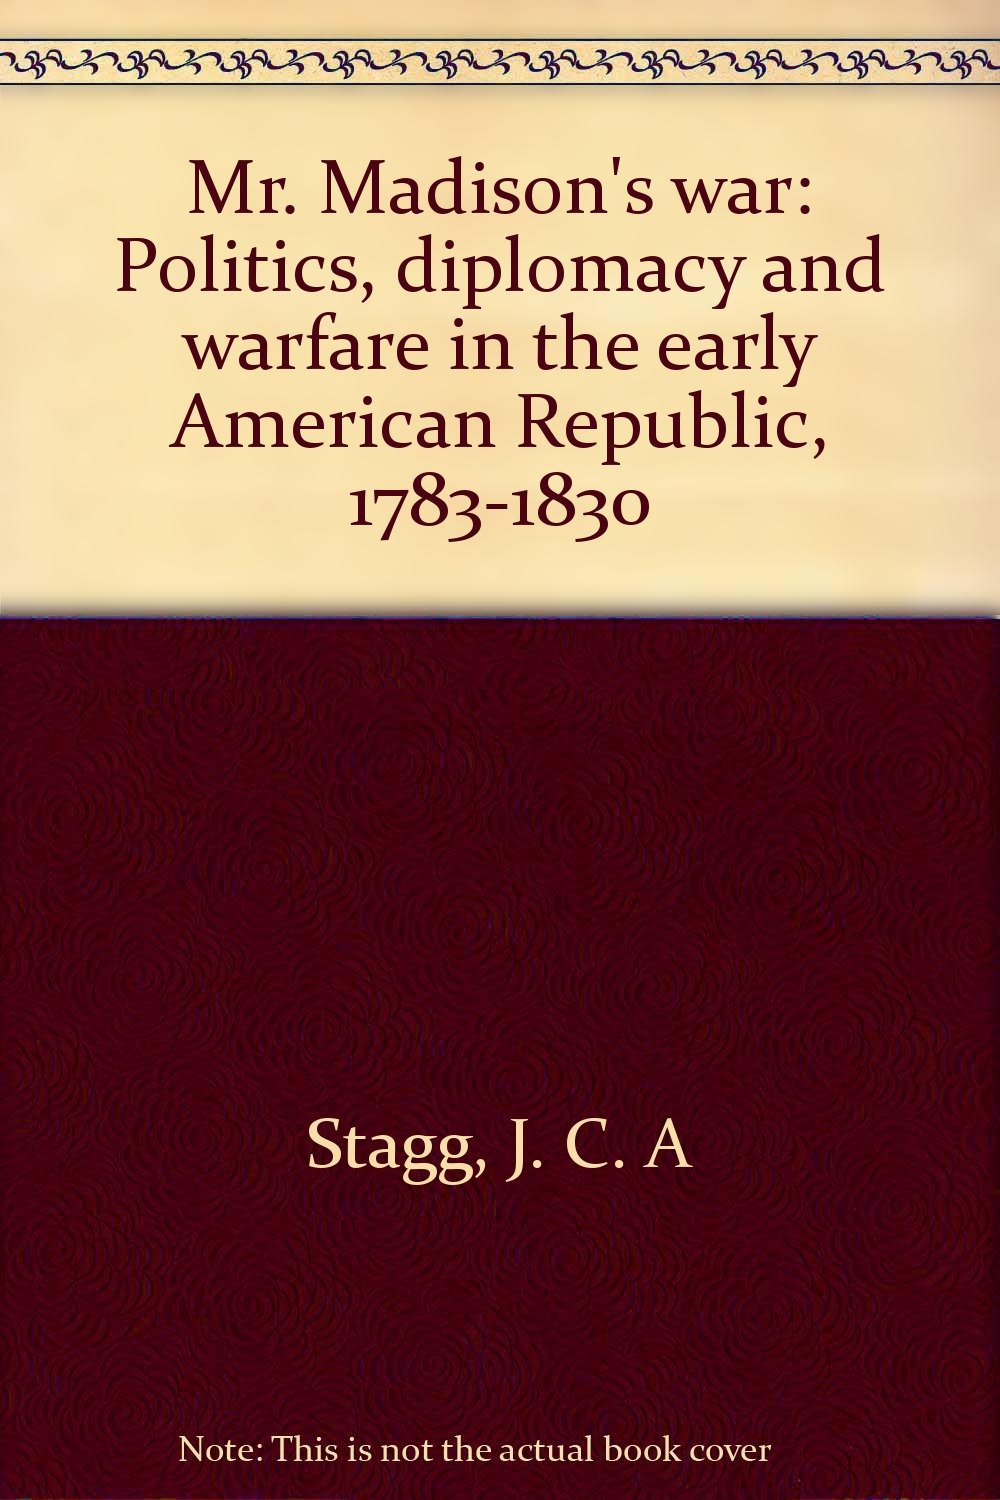 Mr. Madison's War: Politics, Diplomacy, and Warfare in the Early American  Republic, 1783-1830 Hardcover – International Edition, November 21, 1983